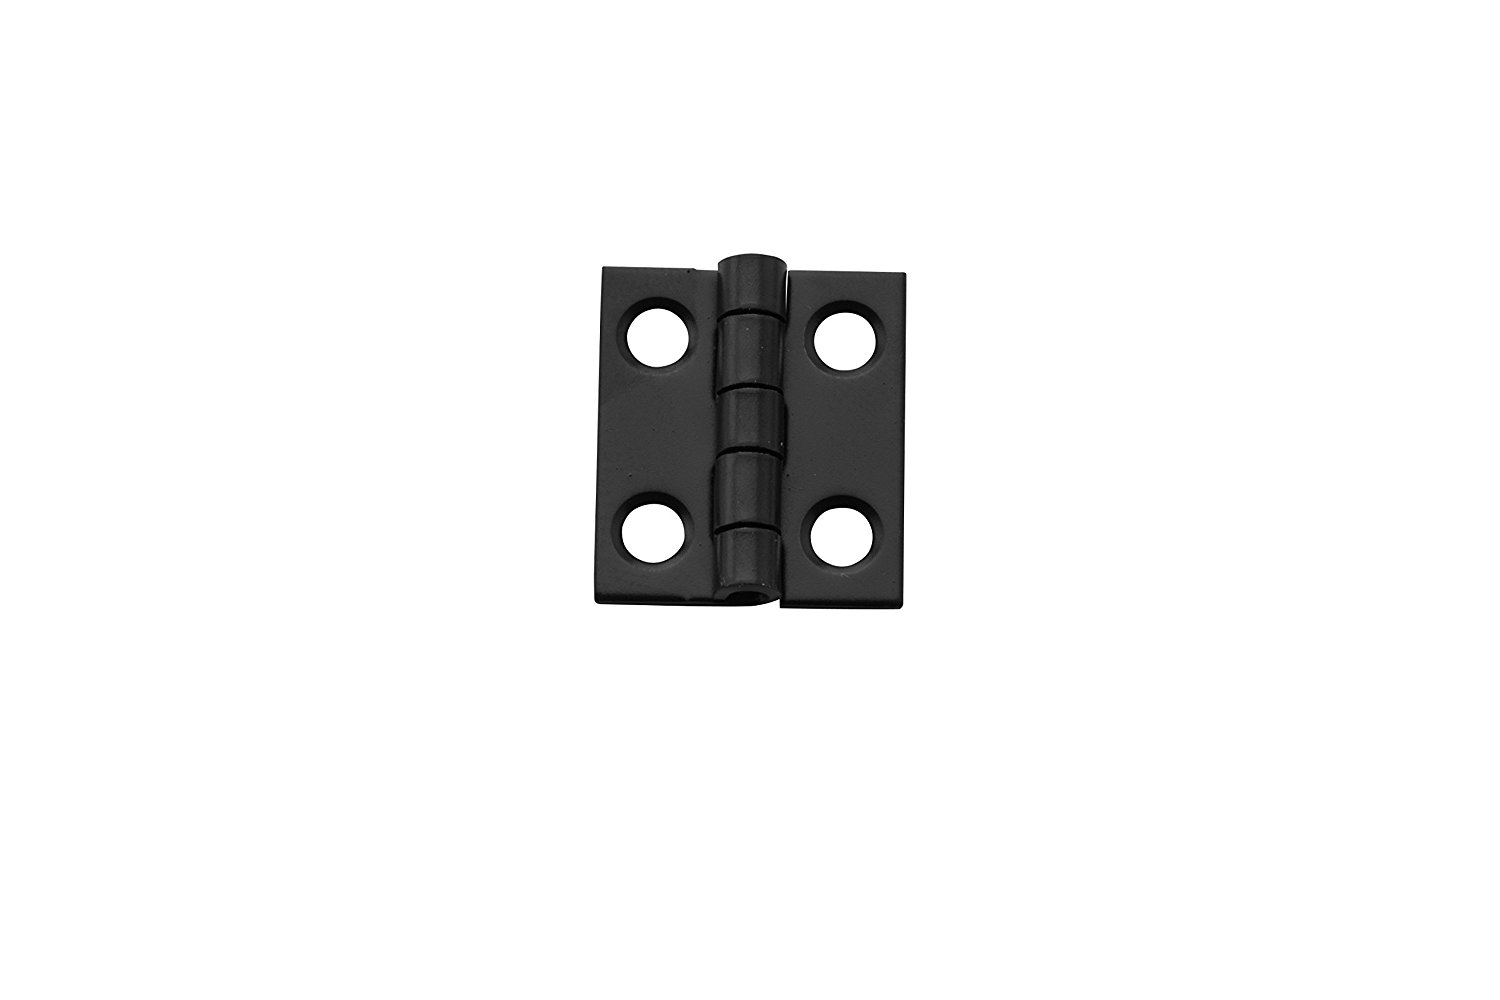 NATIONAL MFG/SPECTRUM BRANDS HHI N211-018 Narrow Hinge, 3/4 x 5/8-Inch, Bronze